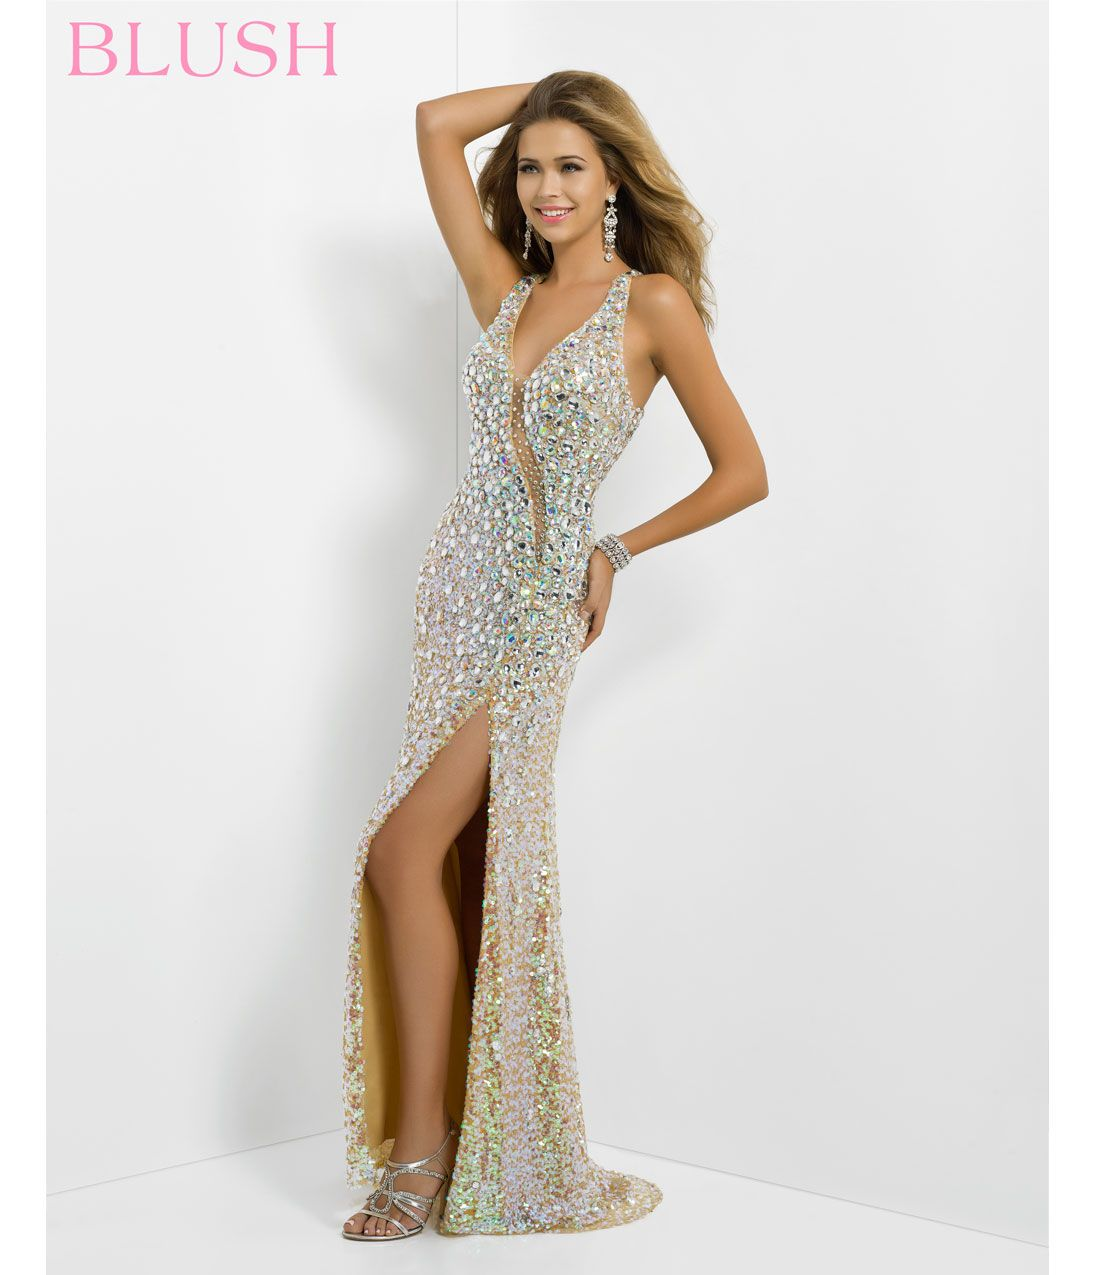 White Sequin Prom Dress Photo Album - Reikian